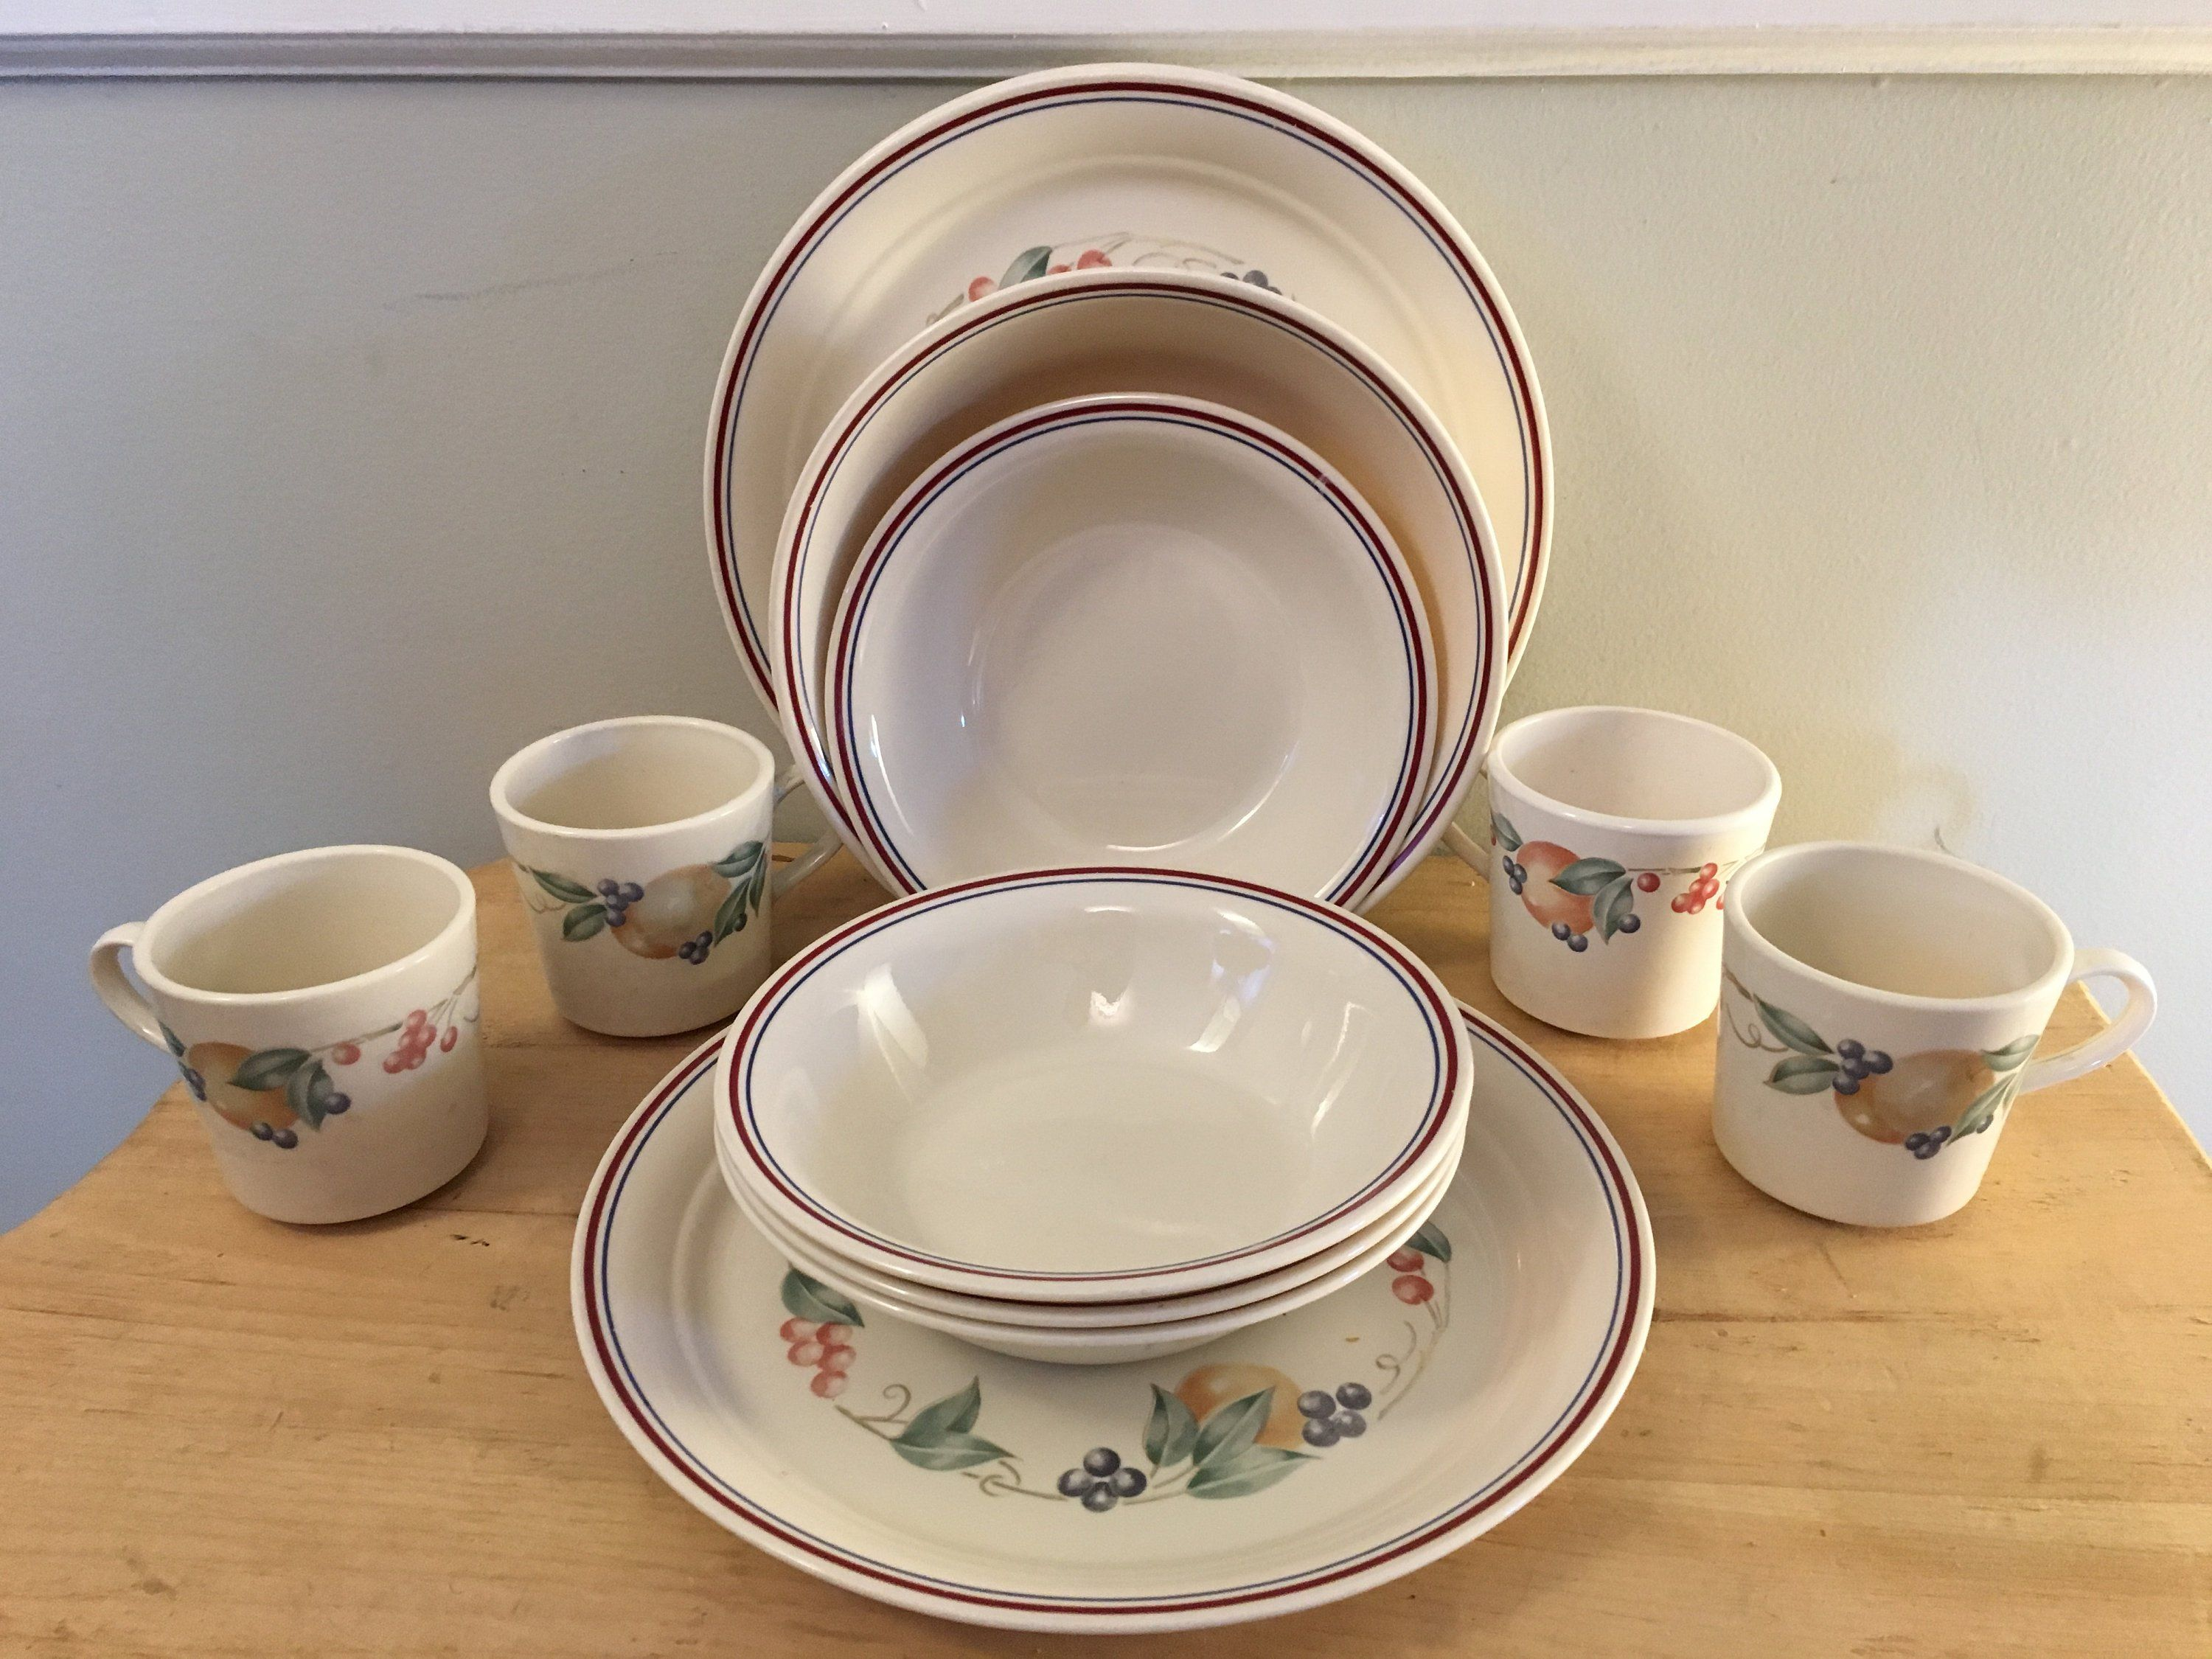 Rustic 16 Piece Dinner Table Set Traditional Flower Style Plates Bowls /& Mugs